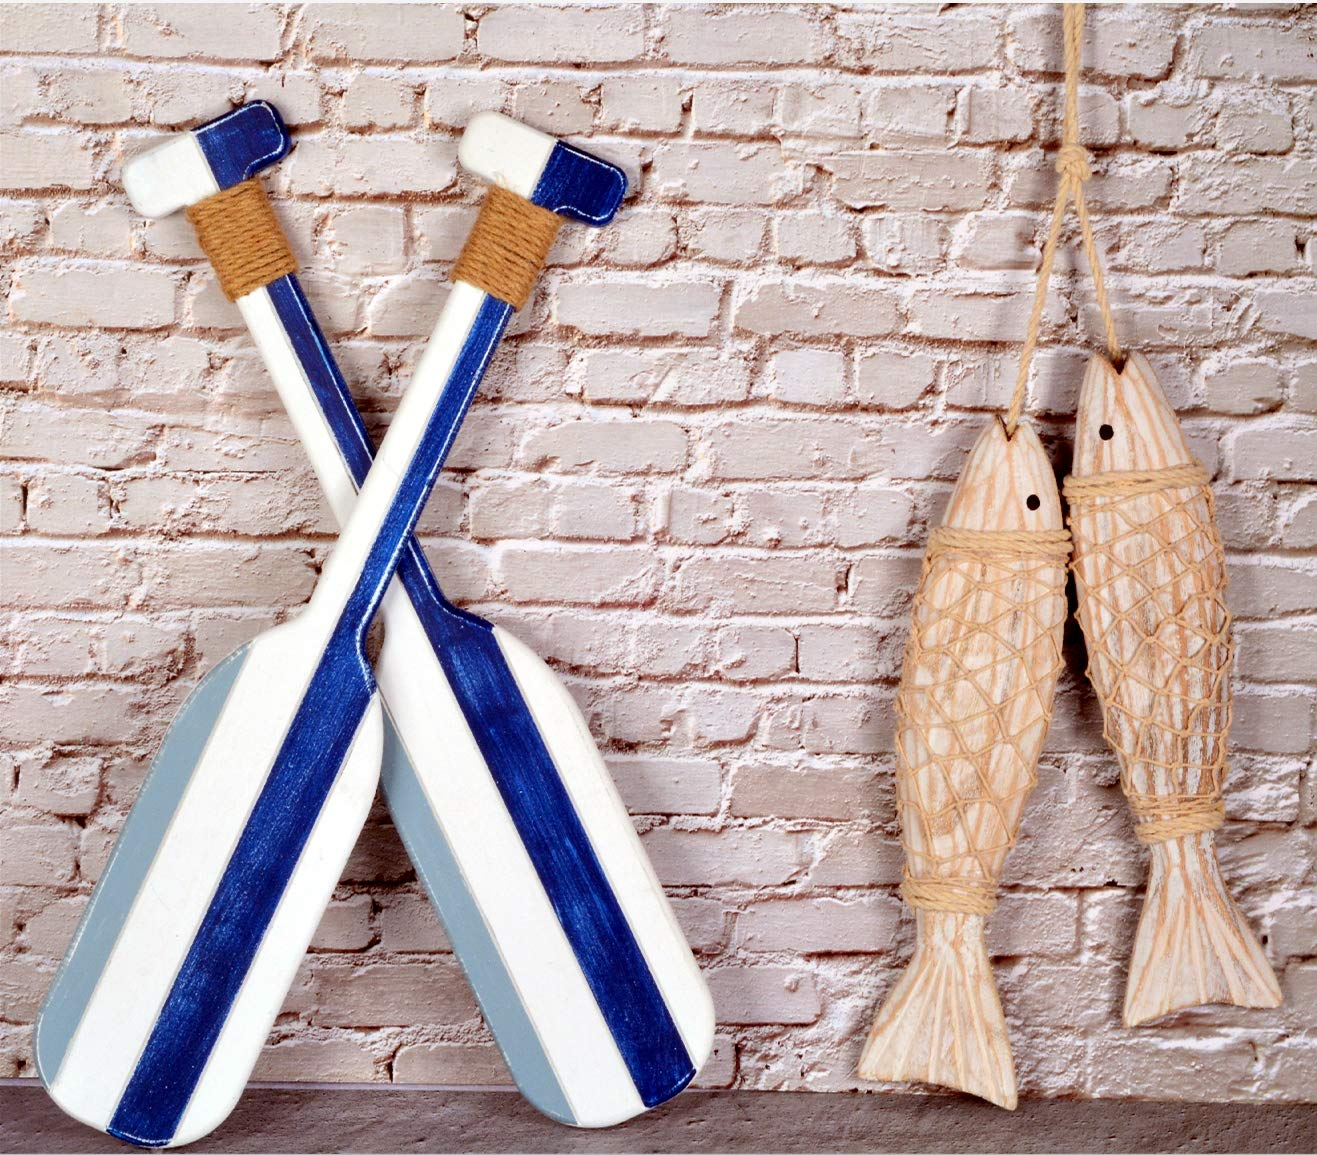 Wooden Oar Wall Decor and Antique Wood Fish Decor Ornament Wall Hanging,  Indoor Décor Beach House Paddle Nautical Decor,Wooden Fish Decorations for